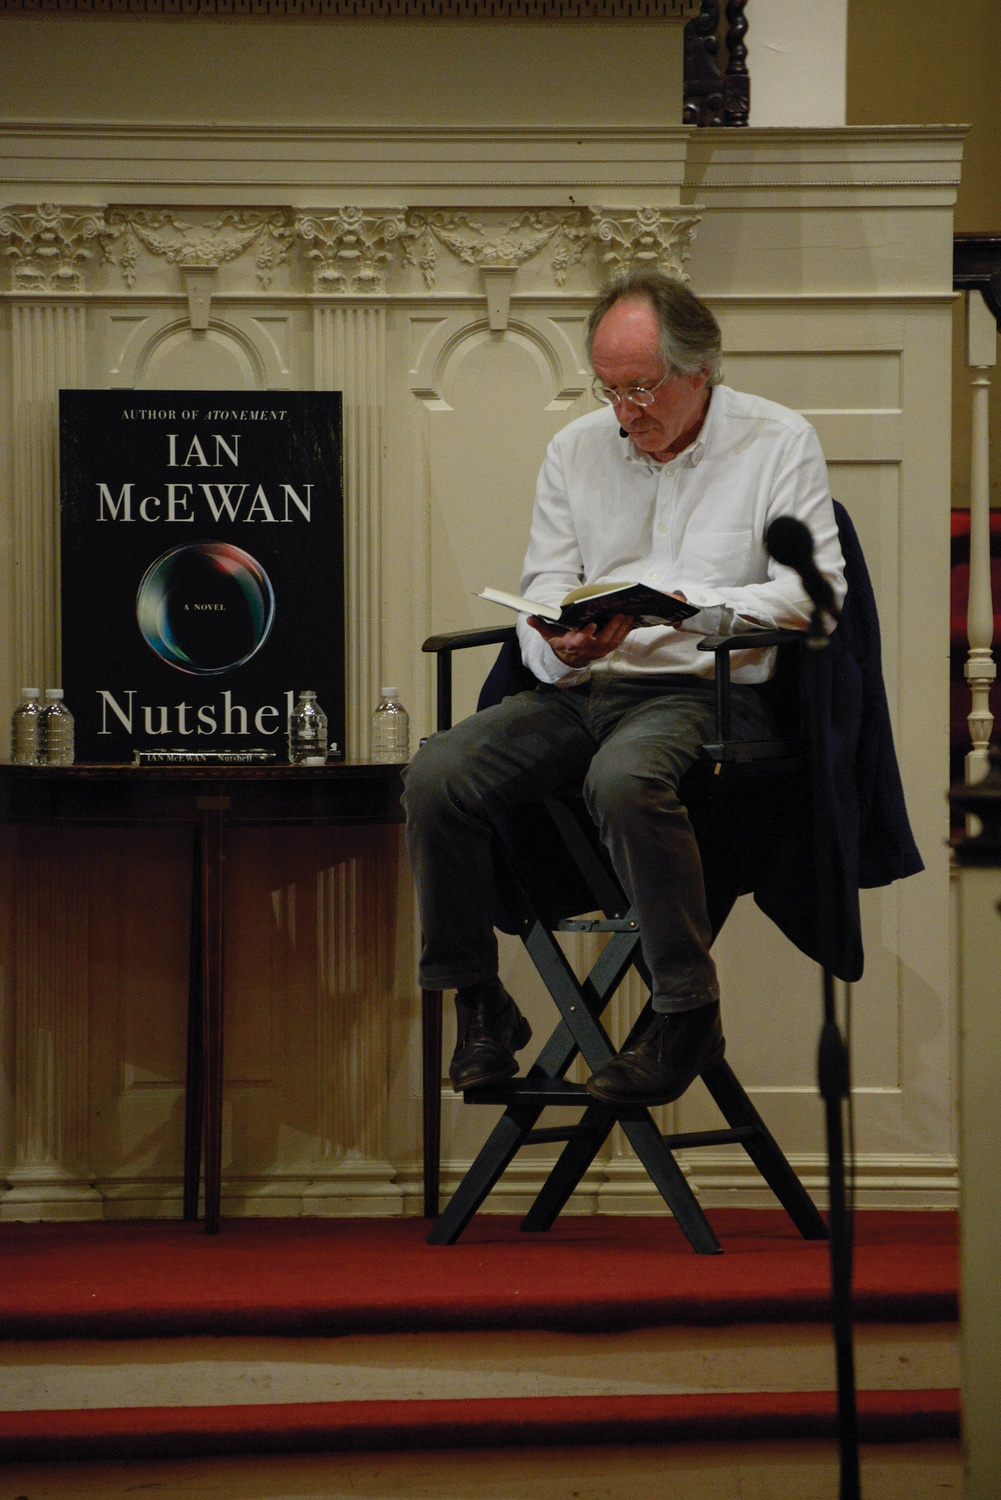 Ian Mcewan, Author Of Atonement, Reads Aloud A Chapter Of His Newest Book,  Nutshell